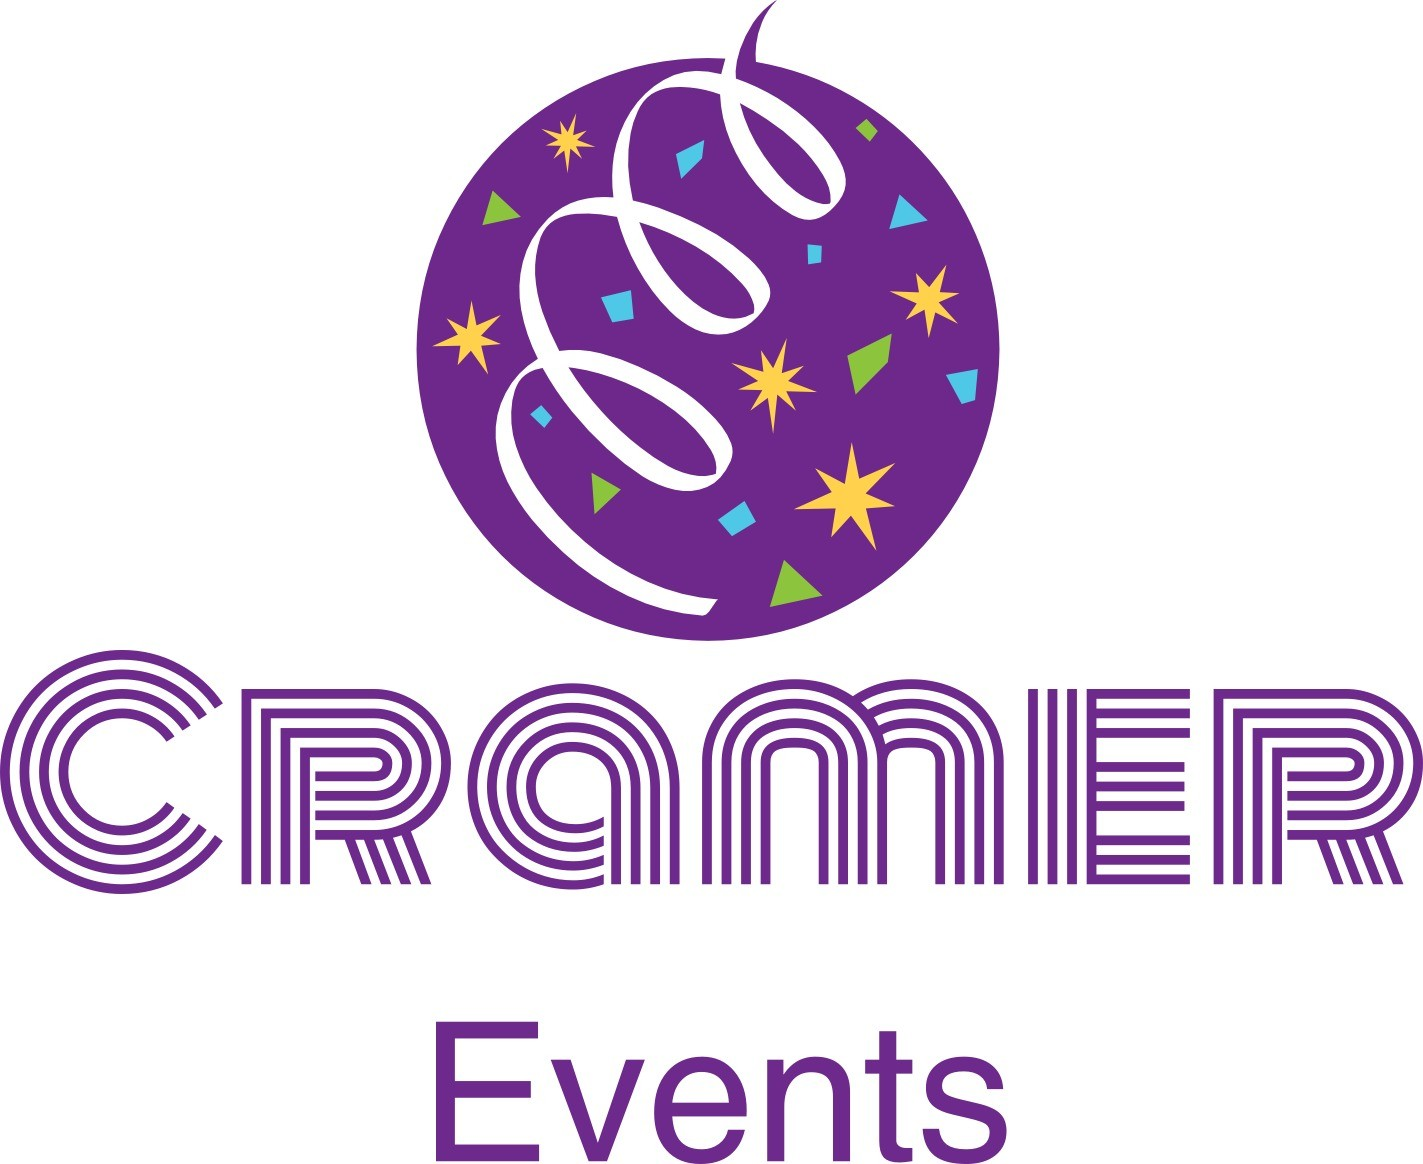 Cramer Events